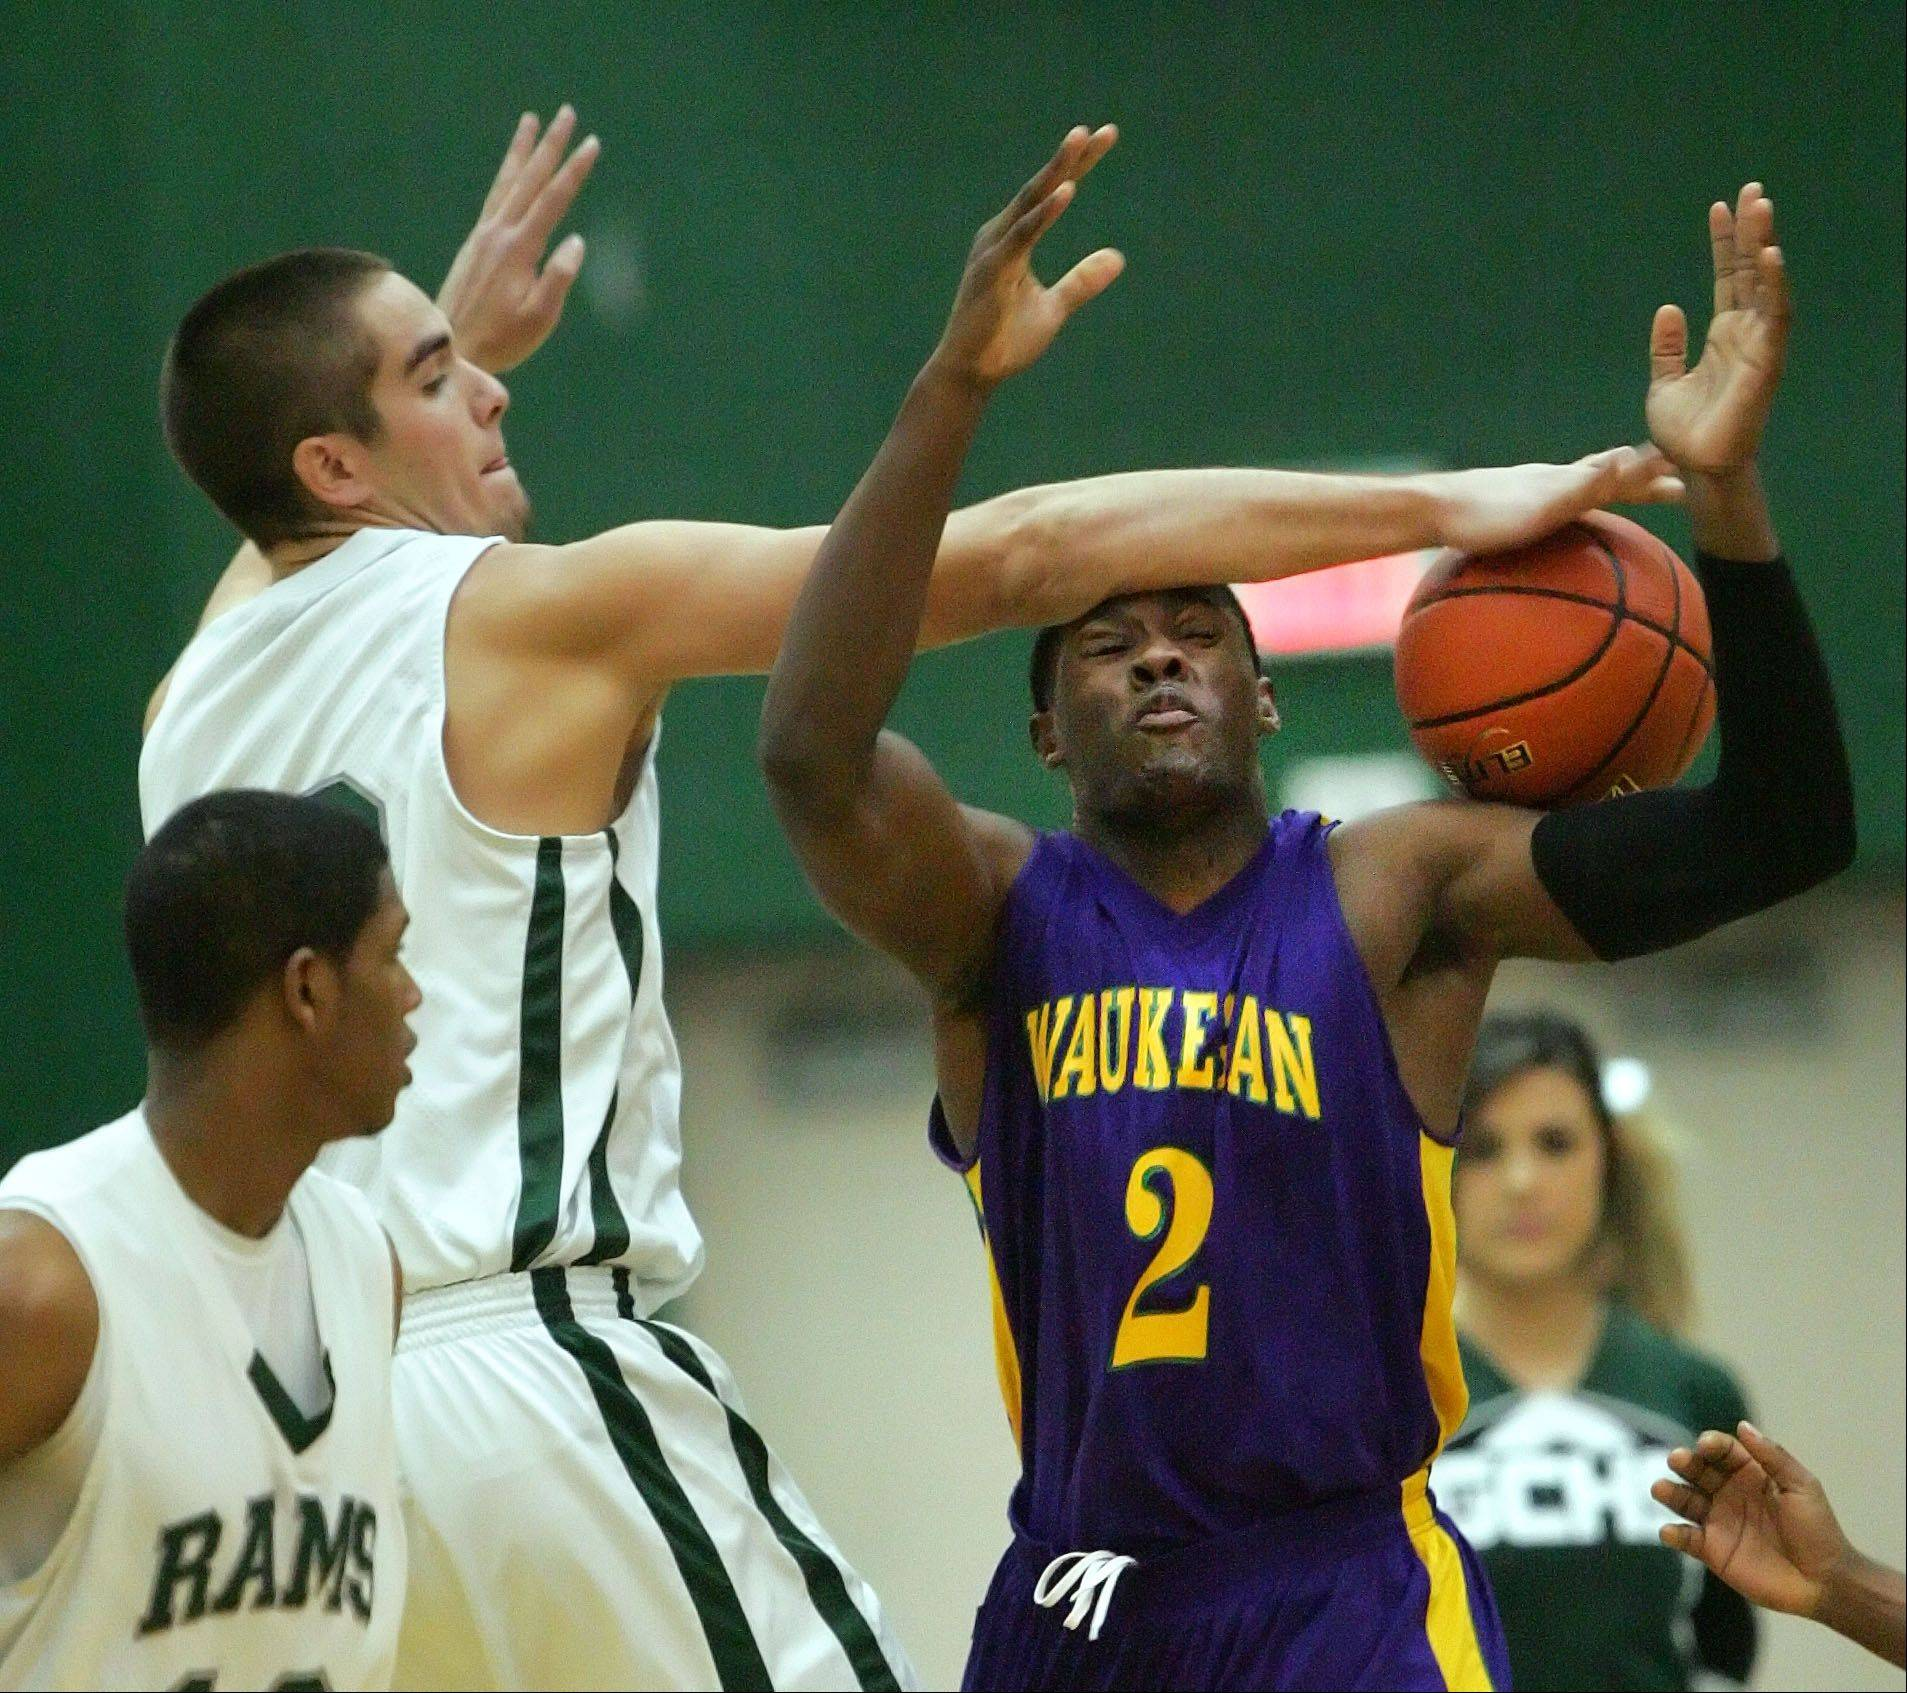 Grayslake Central's Casey Boyle, left, blocks the shot of Waukegan's Akeem Springs during Wednesday's basketball game in Grayslake.